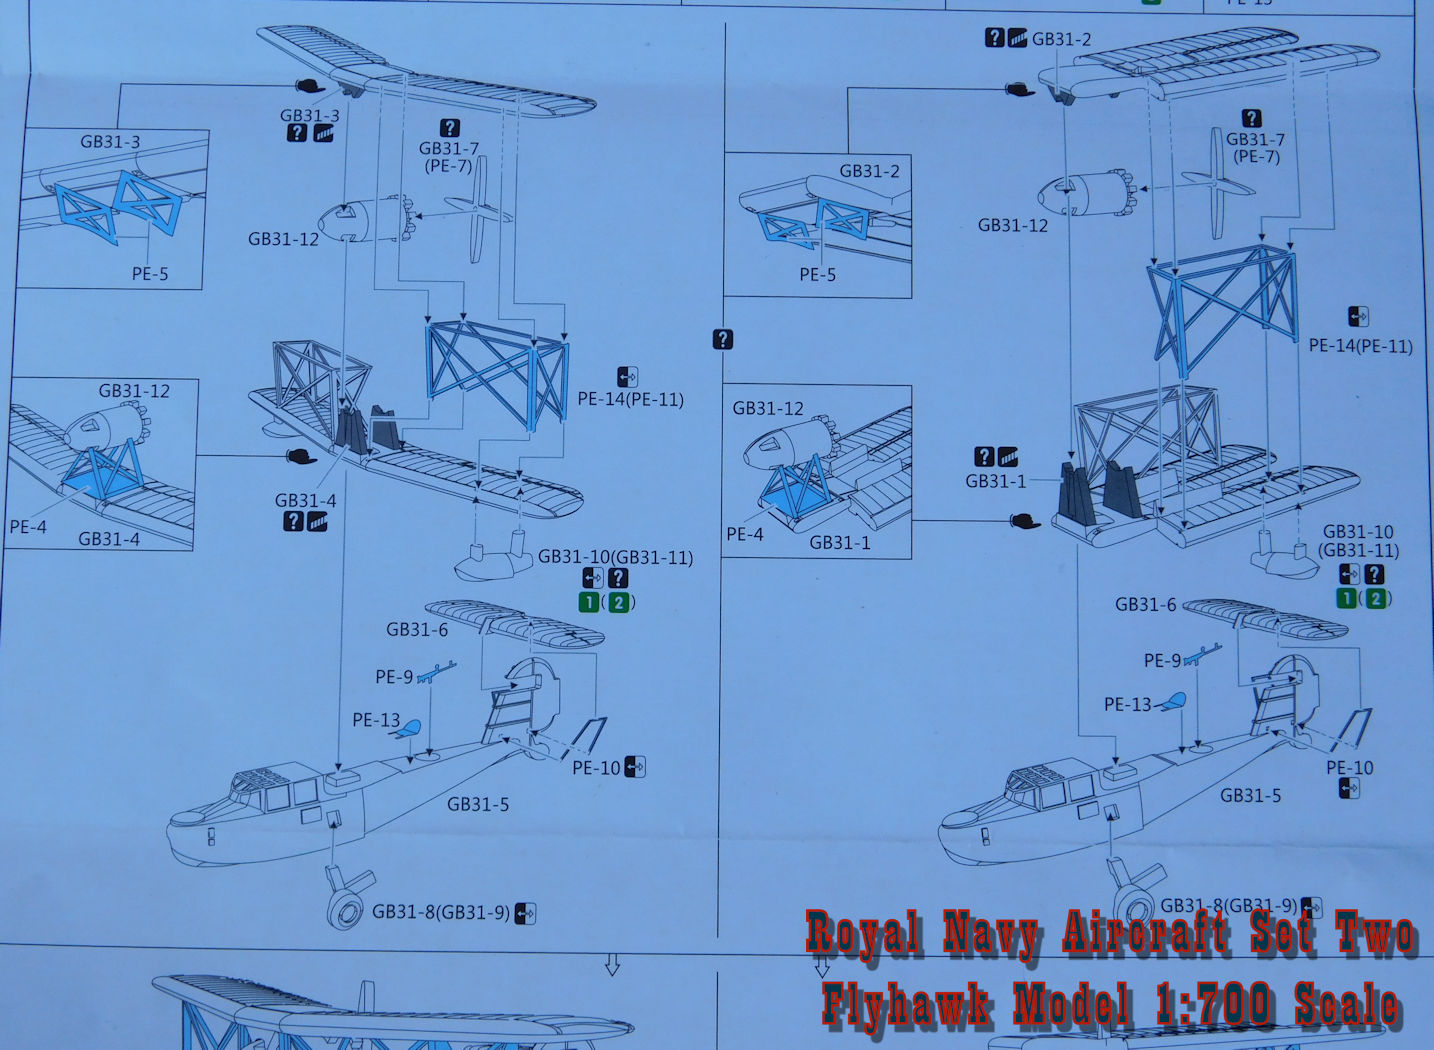 Flyhawkroyalnavyaircraftsettwo Catapult Engineering Schematics The Flyhawk Royal Navy Aircraft Set Two In 1700 Scale Is Essentially A Float Plane With Walruses For Battleships